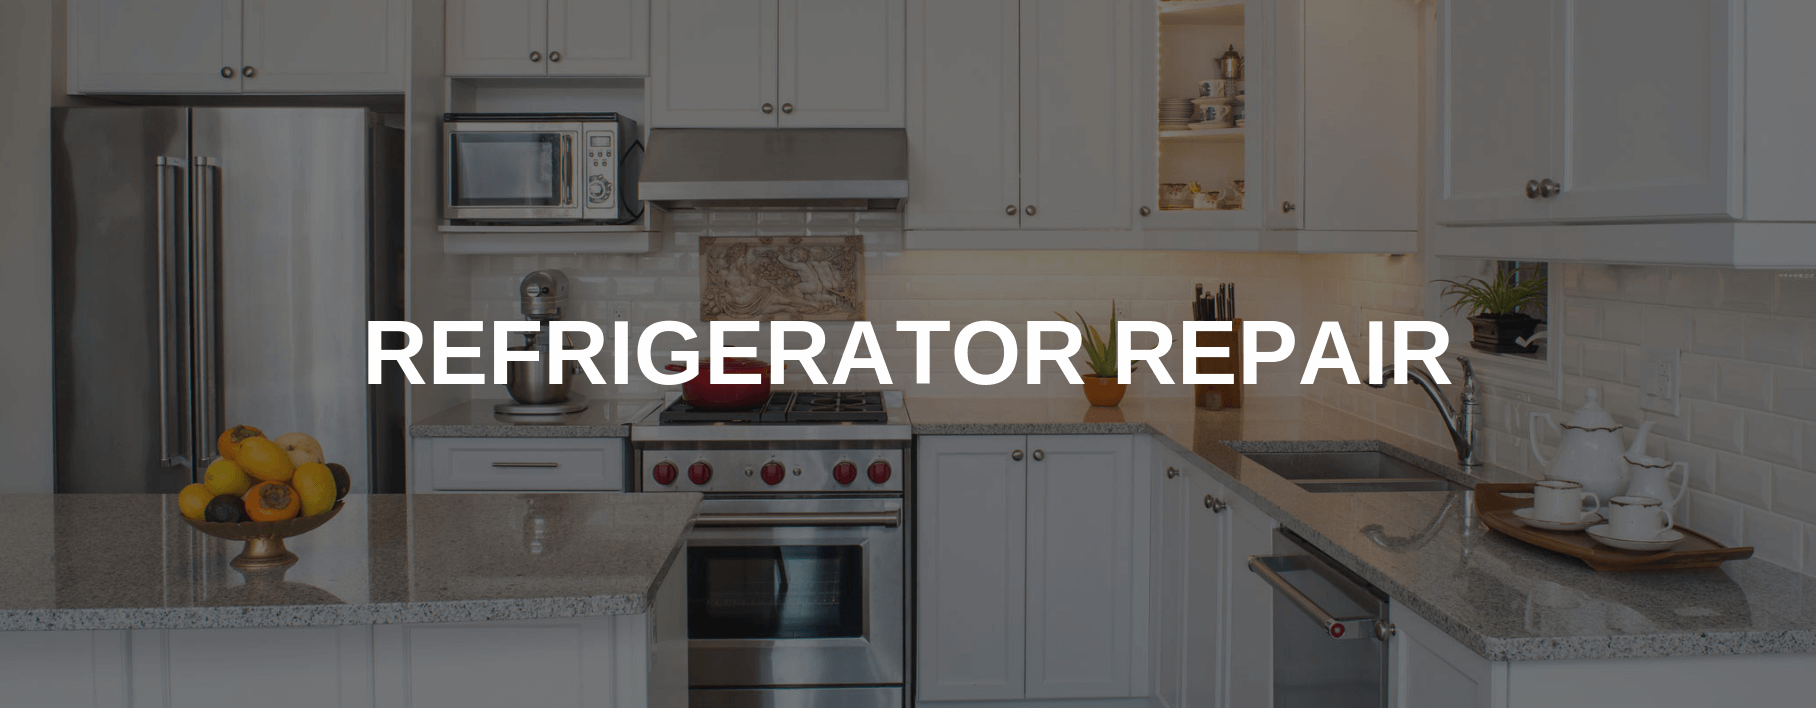 shoreline refrigerator repair